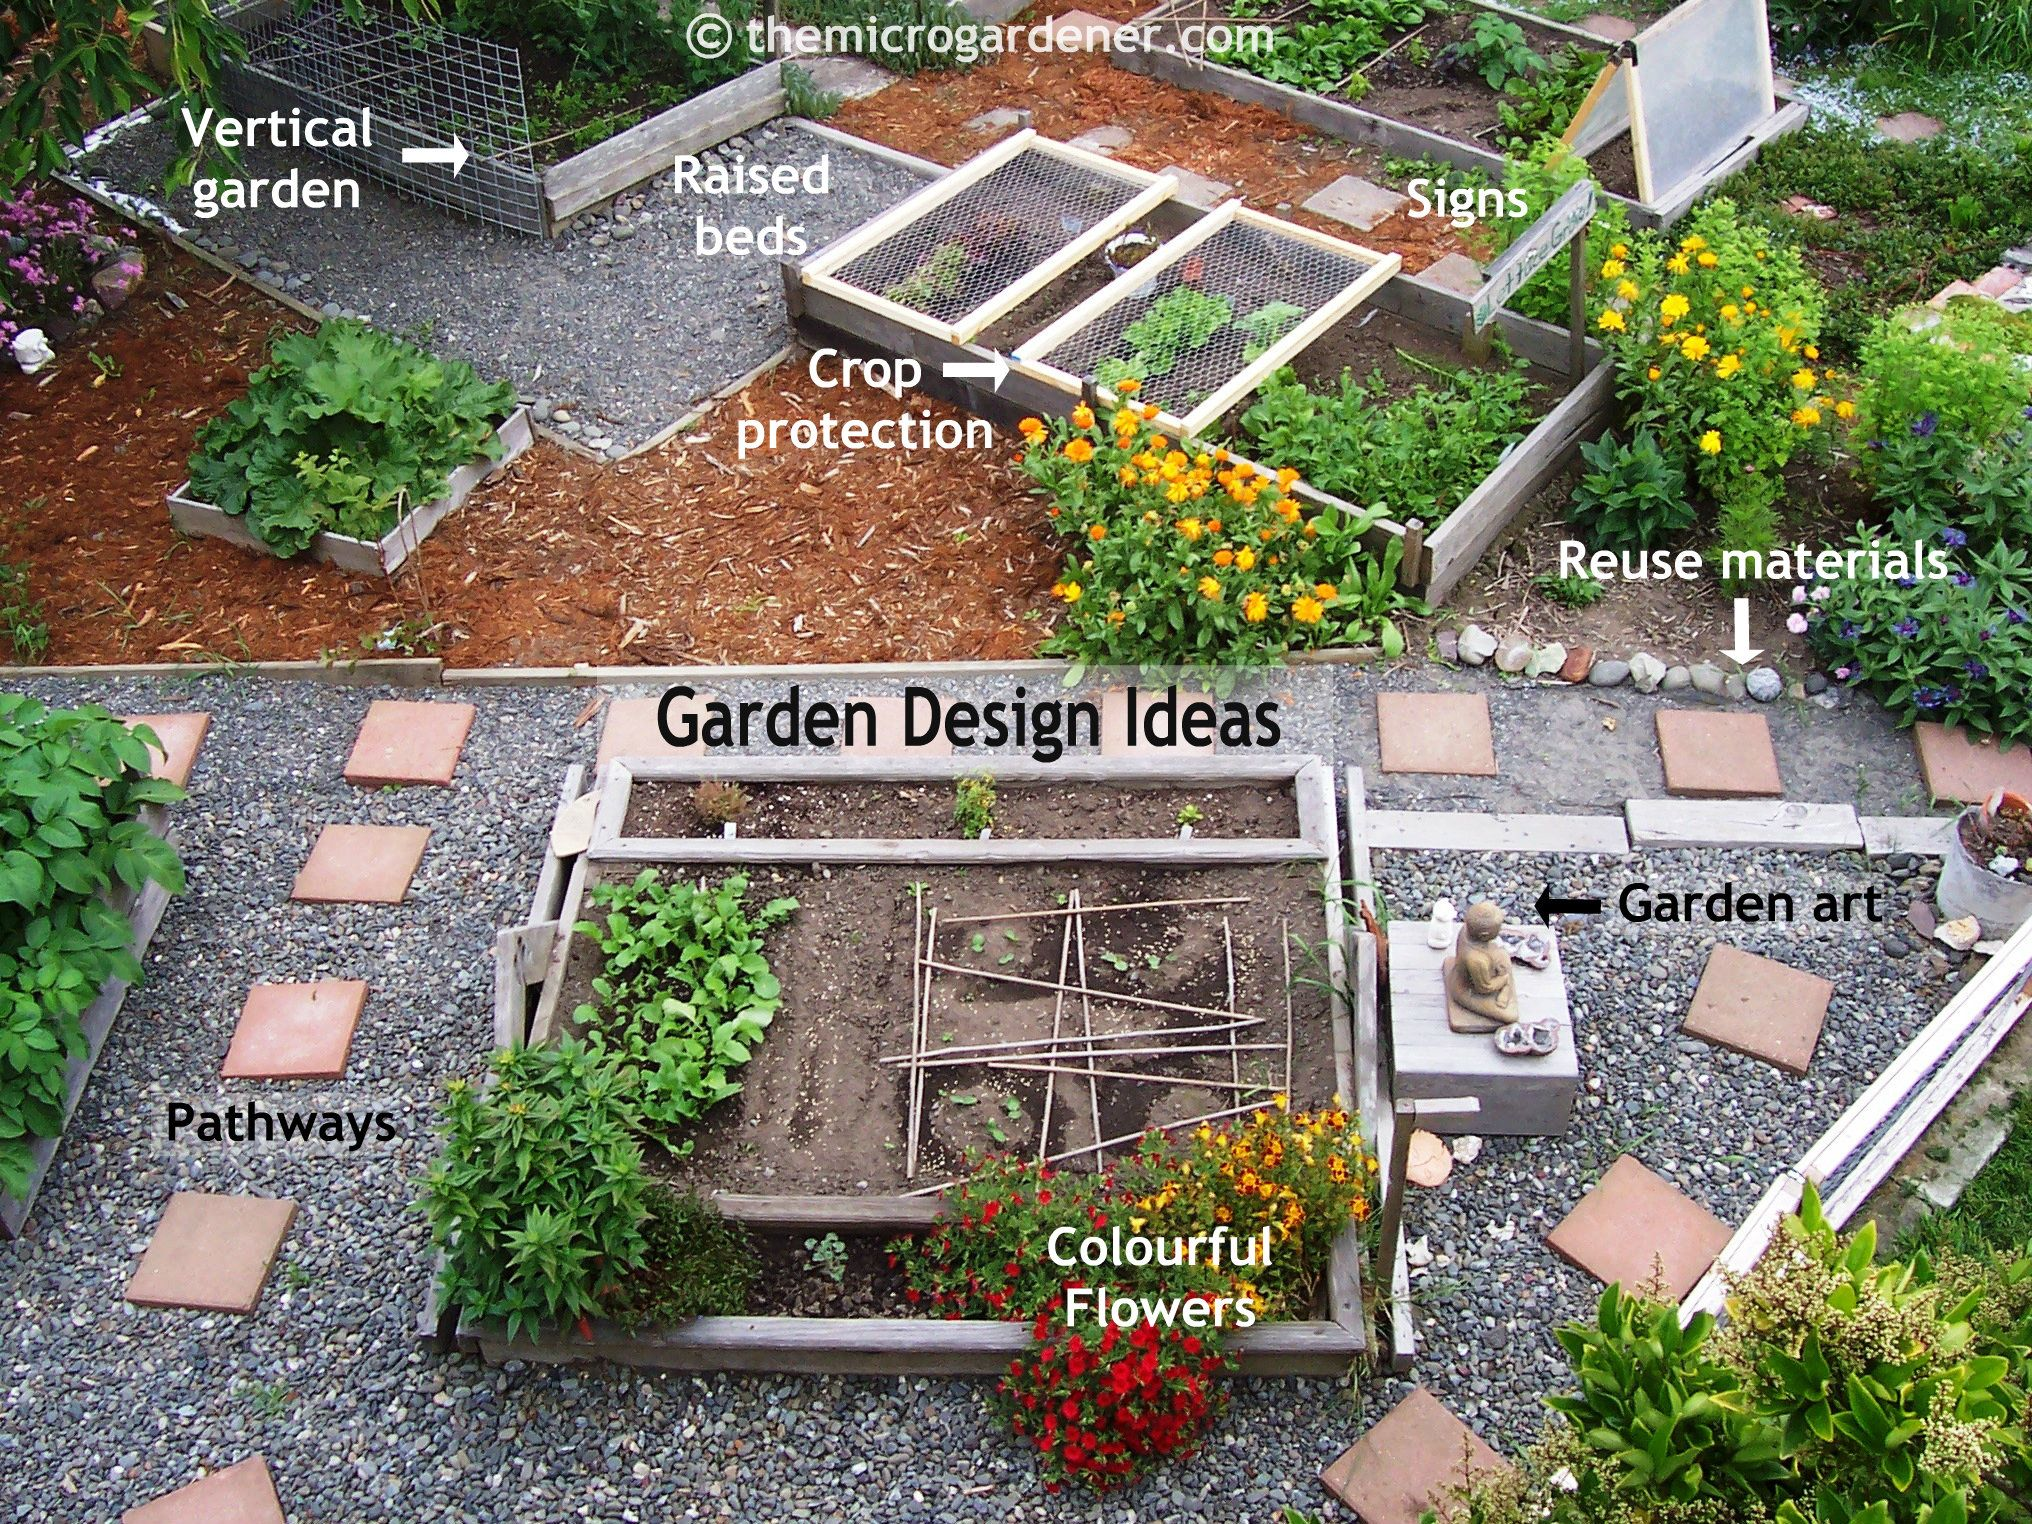 Small garden design ideas on pinterest vertical gardens for Design my garden